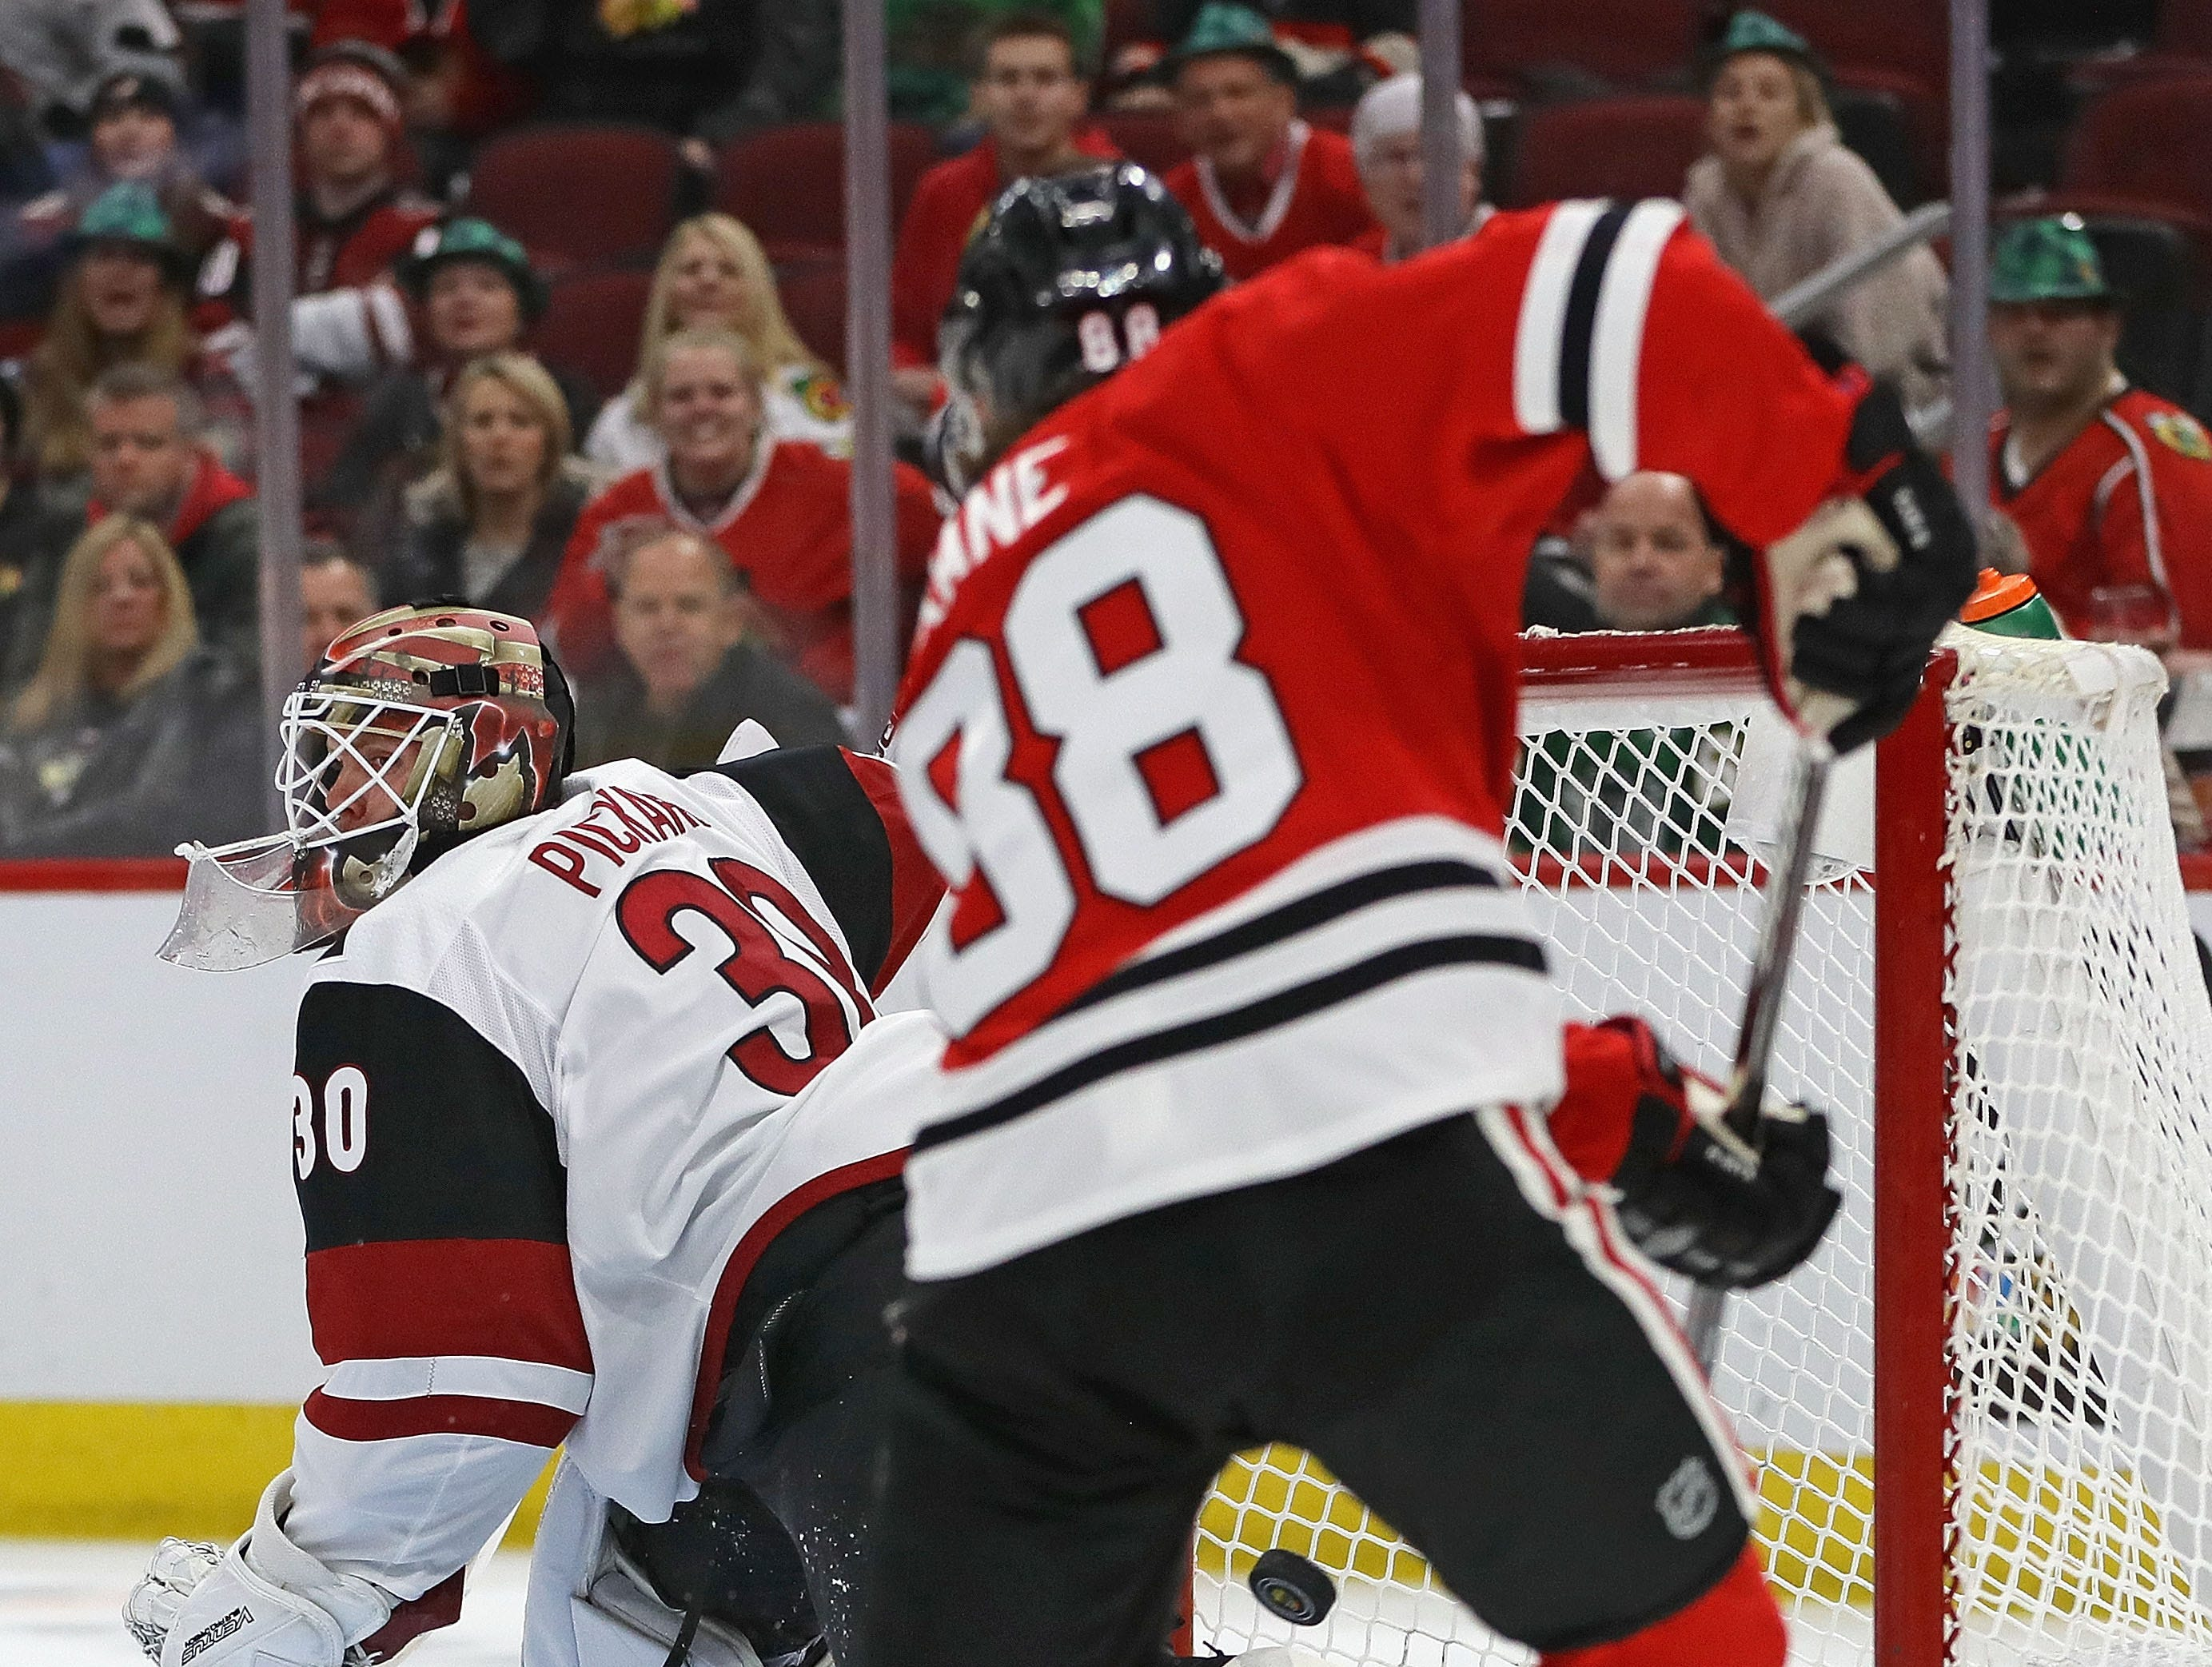 Blackhawks right wing Patrick Kane pushes the puck past Coyotes goaltender Calvin Pickard for a goal in the second period of a game March 11 at the United Center.